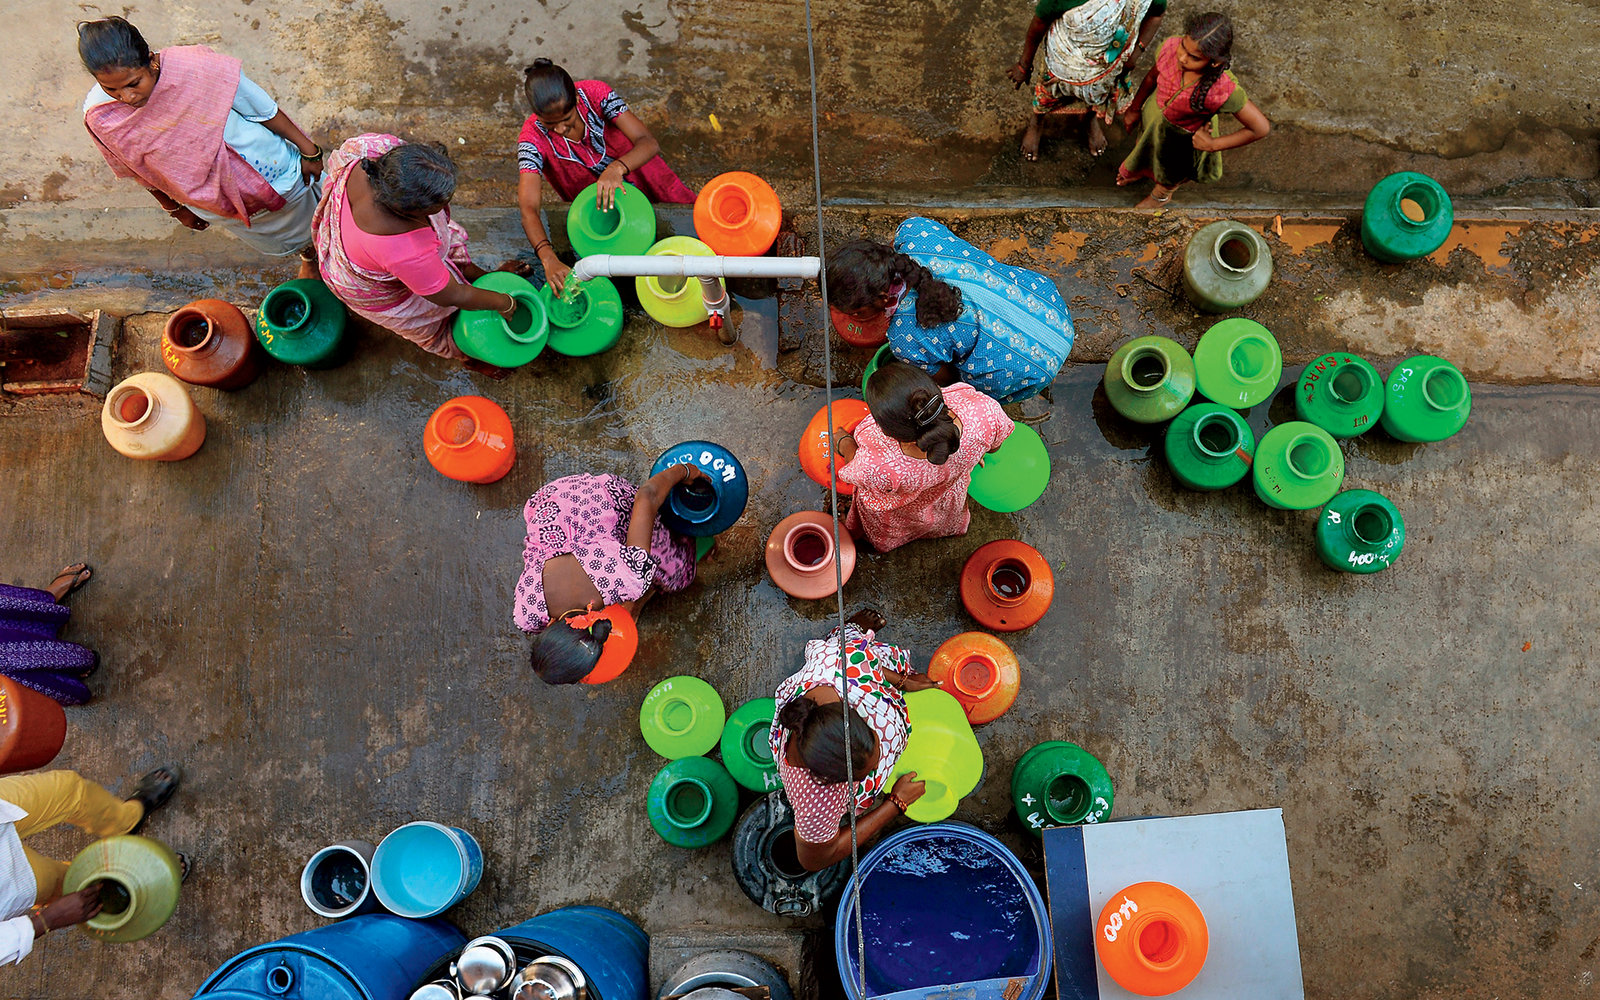 This photo taken on March 18, 2015 shows residents in Bangalore waiting to collect drinking water in plastic pots from a community tap. A new UN report launched in New Delhi on March 20 ahead of World Water Day on March 22 warned of an urgent need to mana